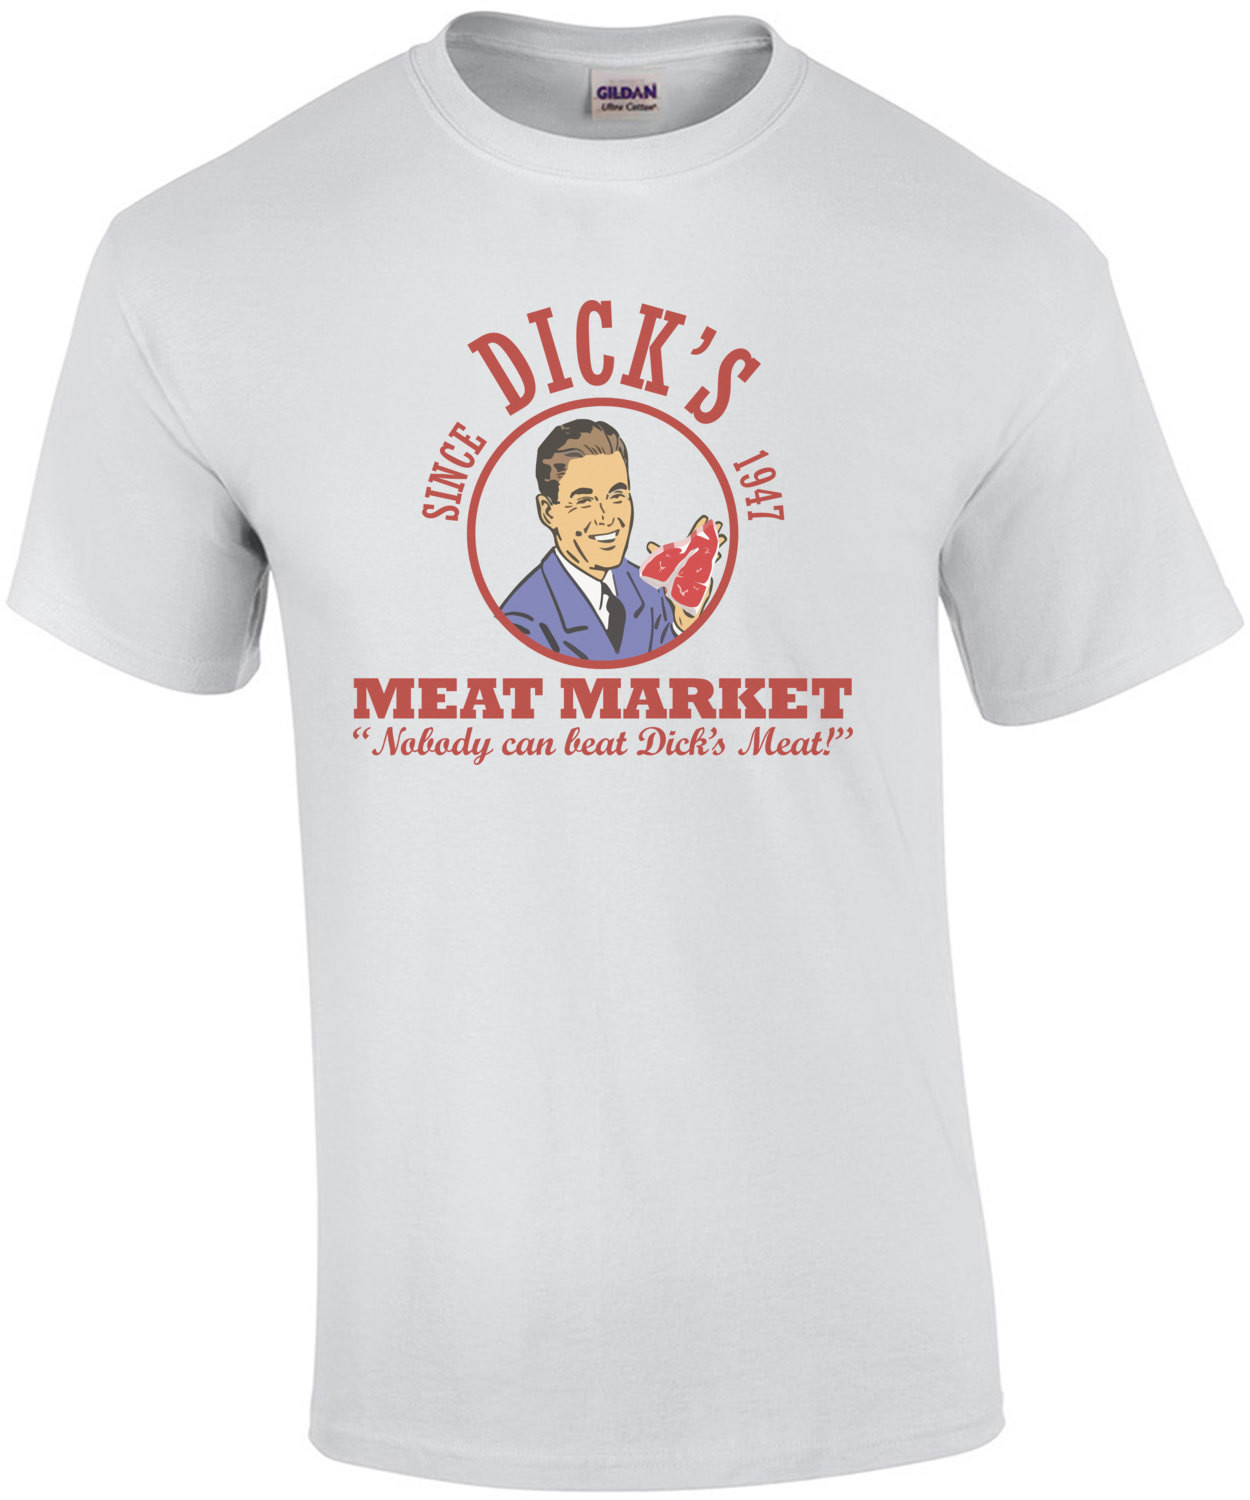 Dick's meat market - nobody can beat dicks meat! Funny vintage t-shirt